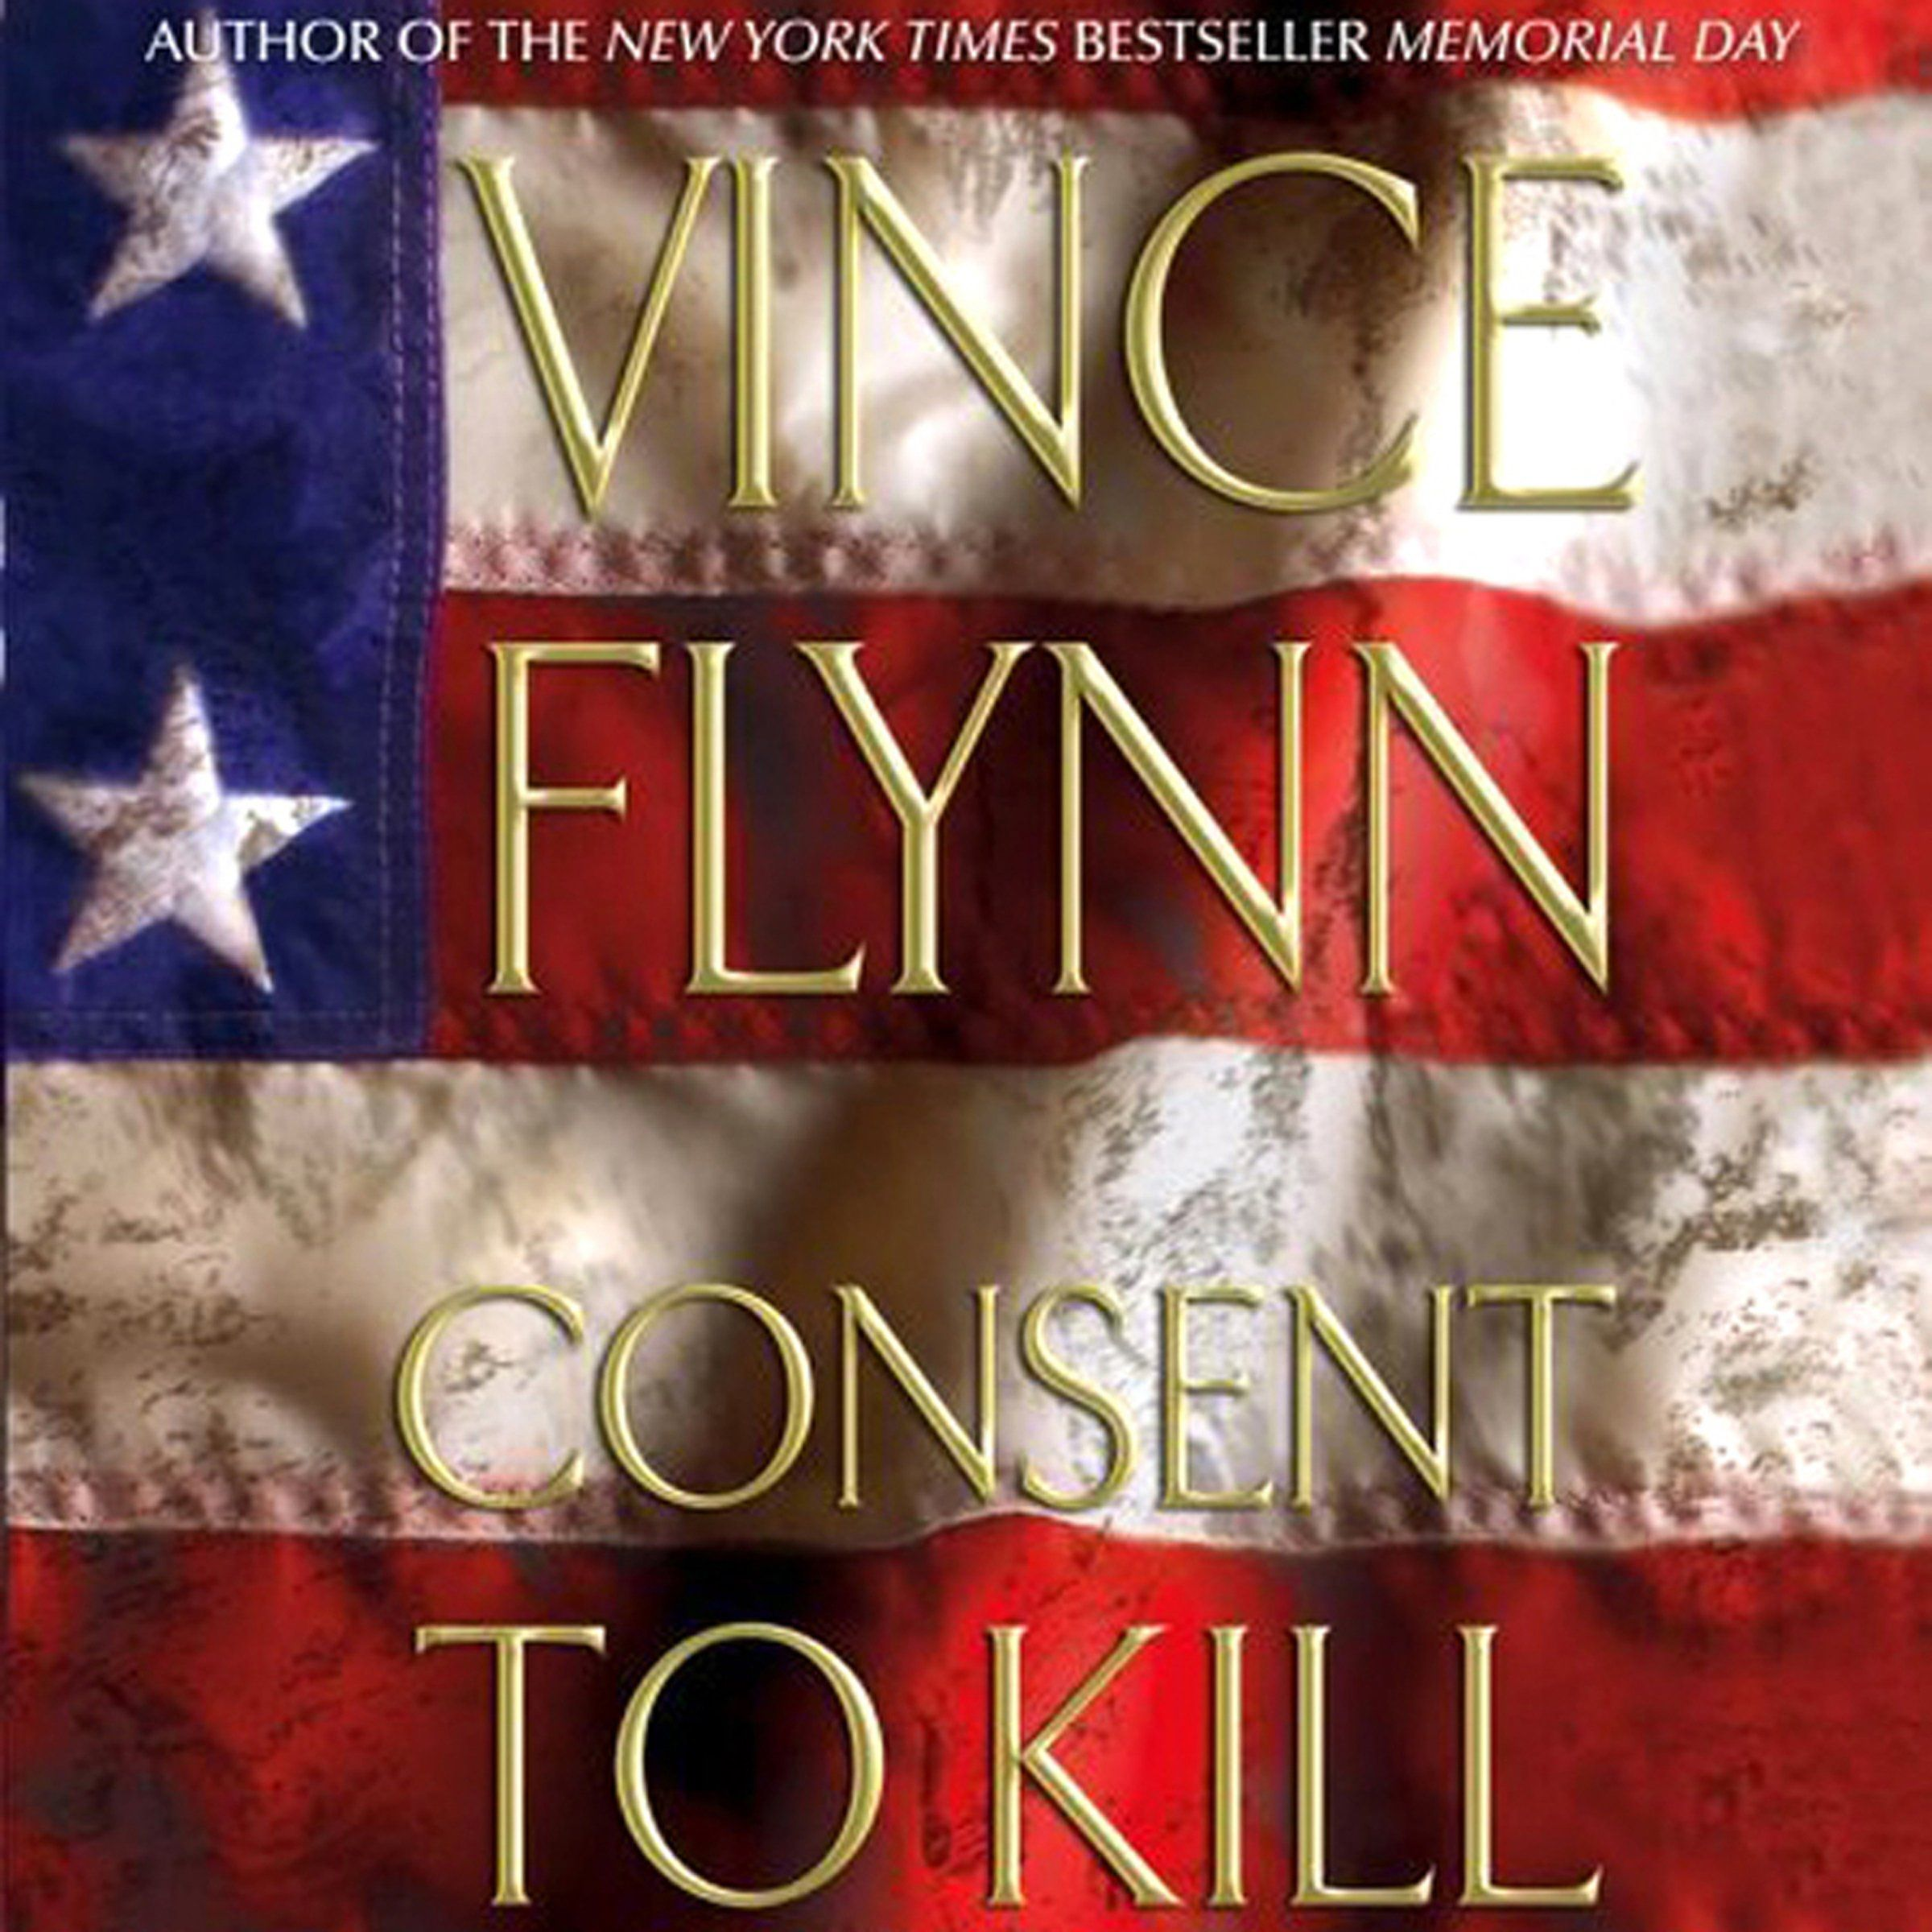 Consent to kill click on the image for additional